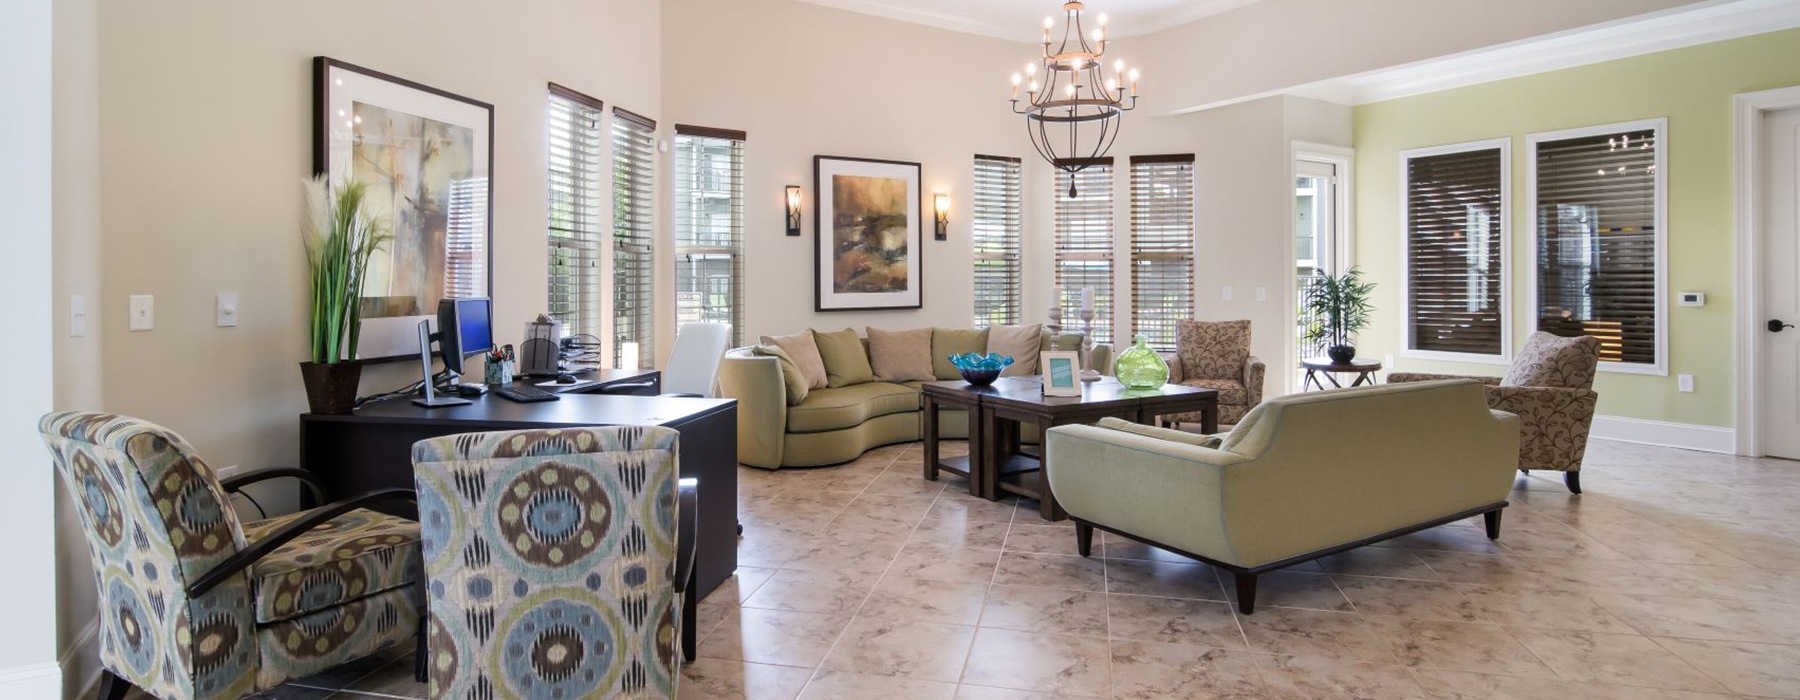 open leasing center with ample seating